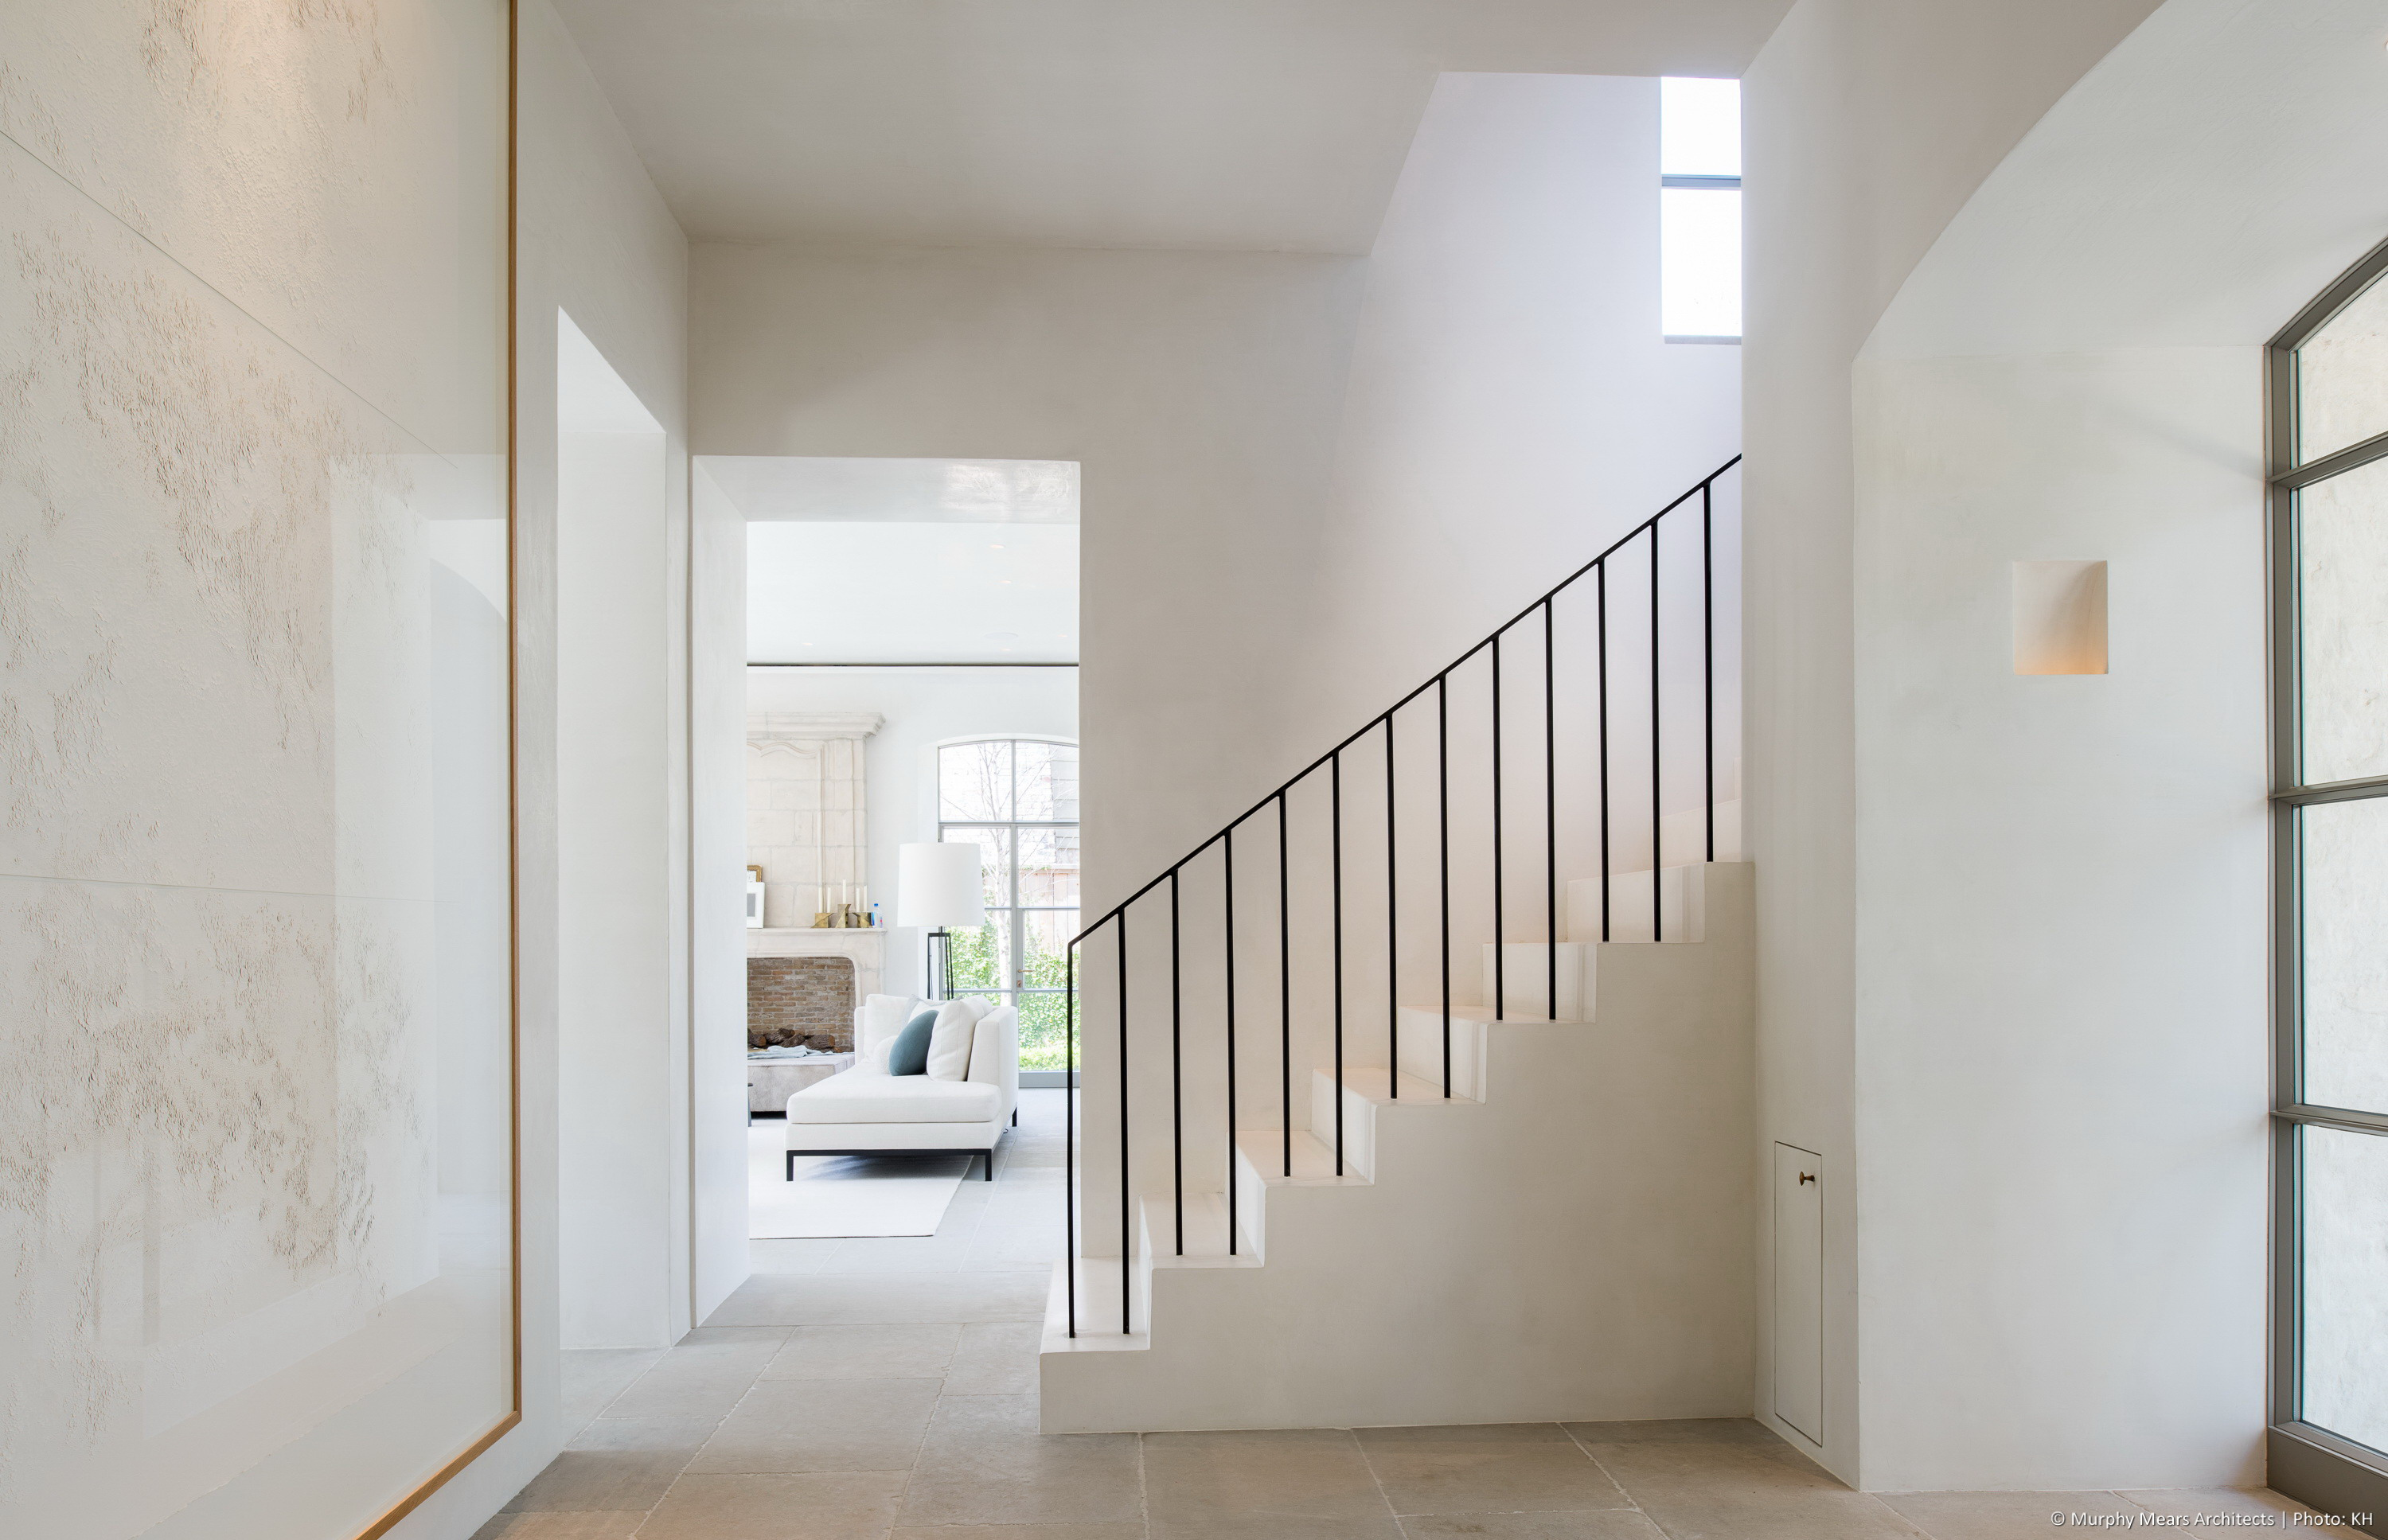 Front entry hall with a plaster stair, and an opening to the living room beyond.